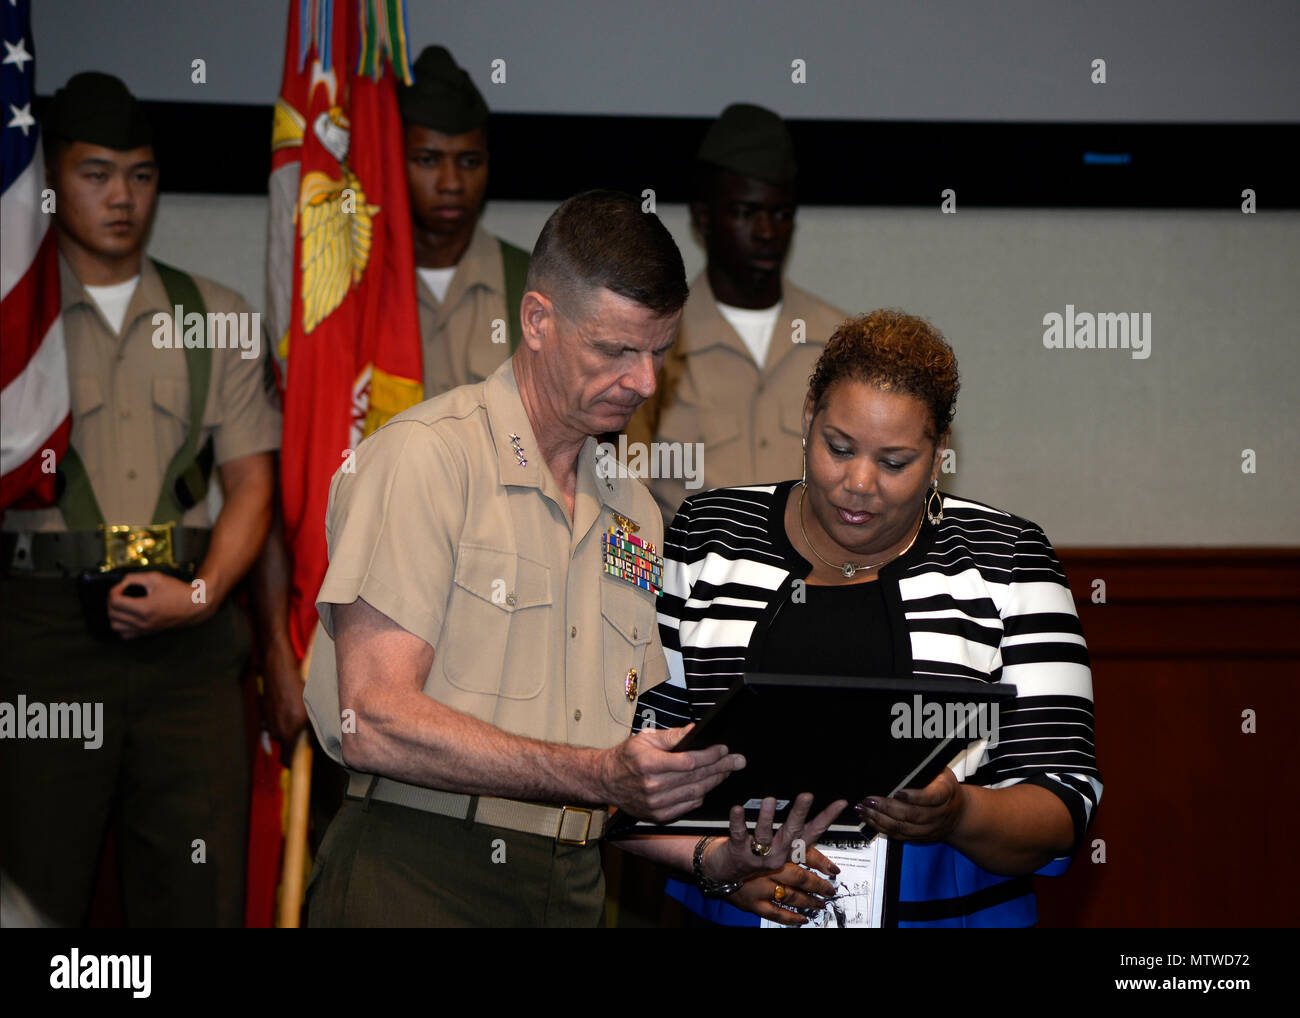 Kim Fountaine, right, accepts a certificate on behalf of her father, U.S. Marine Corps Pfc. Charles Robert Fountain, from Lt. Gen. William D. Beydler, commander of U.S. Marine Forces Central Command, during a Congressional Gold Medal ceremony at MacDill Air Force Base, Fla., Jan. 27, 2017. The certificate was awarded to Fountain who served in the Montford Point Marines, an all African-American unit that was segregated throughout World War II. (U.S. Air Force photo by Tech. Sgt. Krystie Martinez) - Stock Image